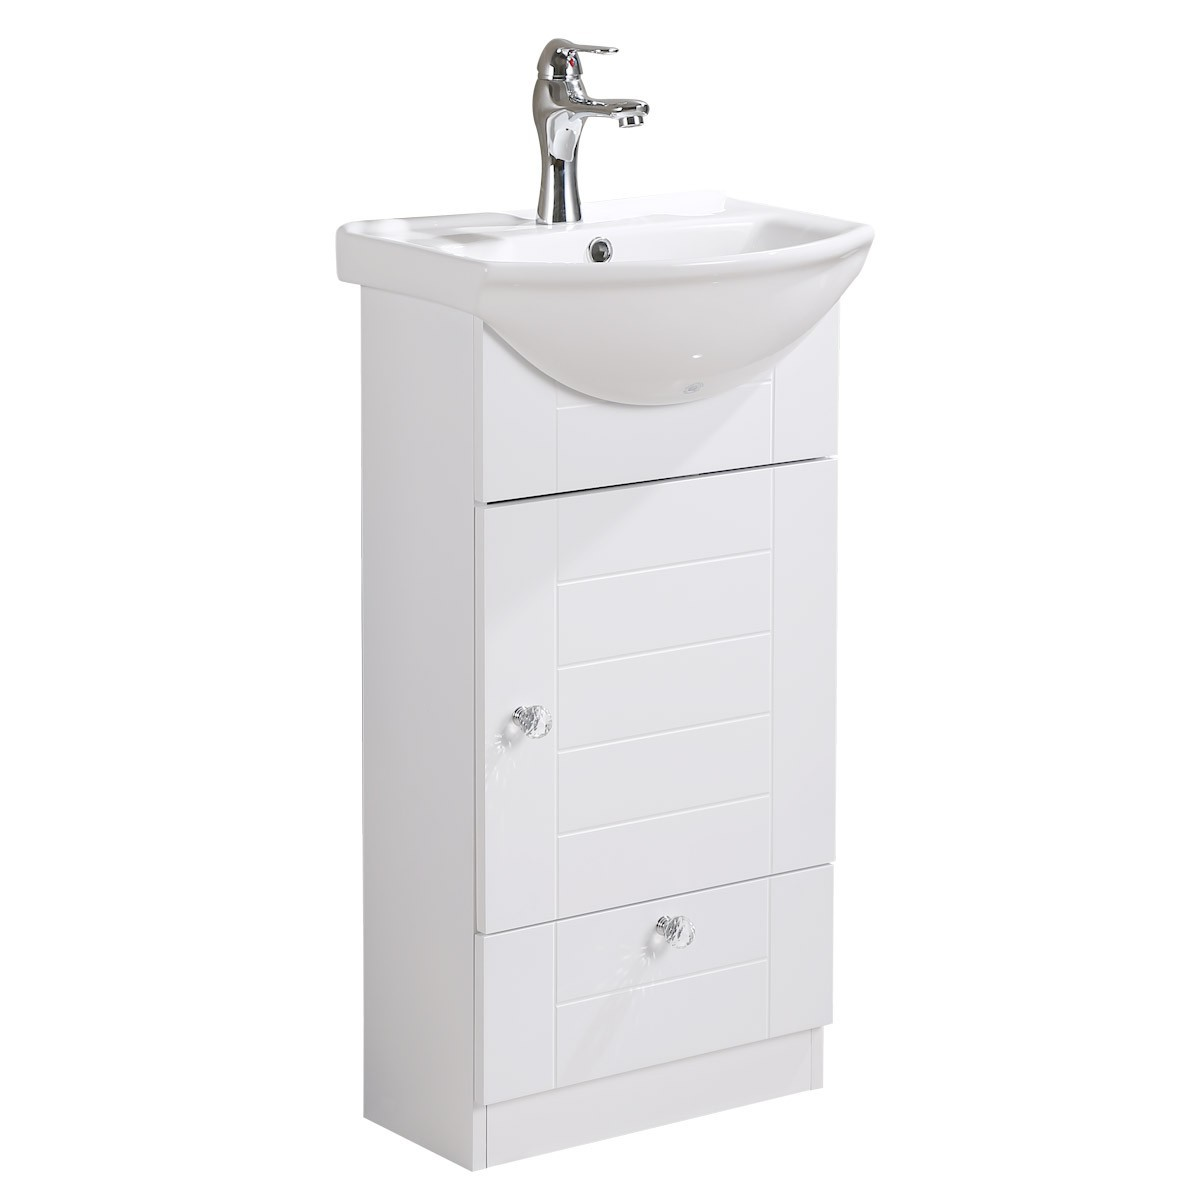 small bathroom cabinets with sink small wall mounted cabinet vanity bathroom sink with 24151